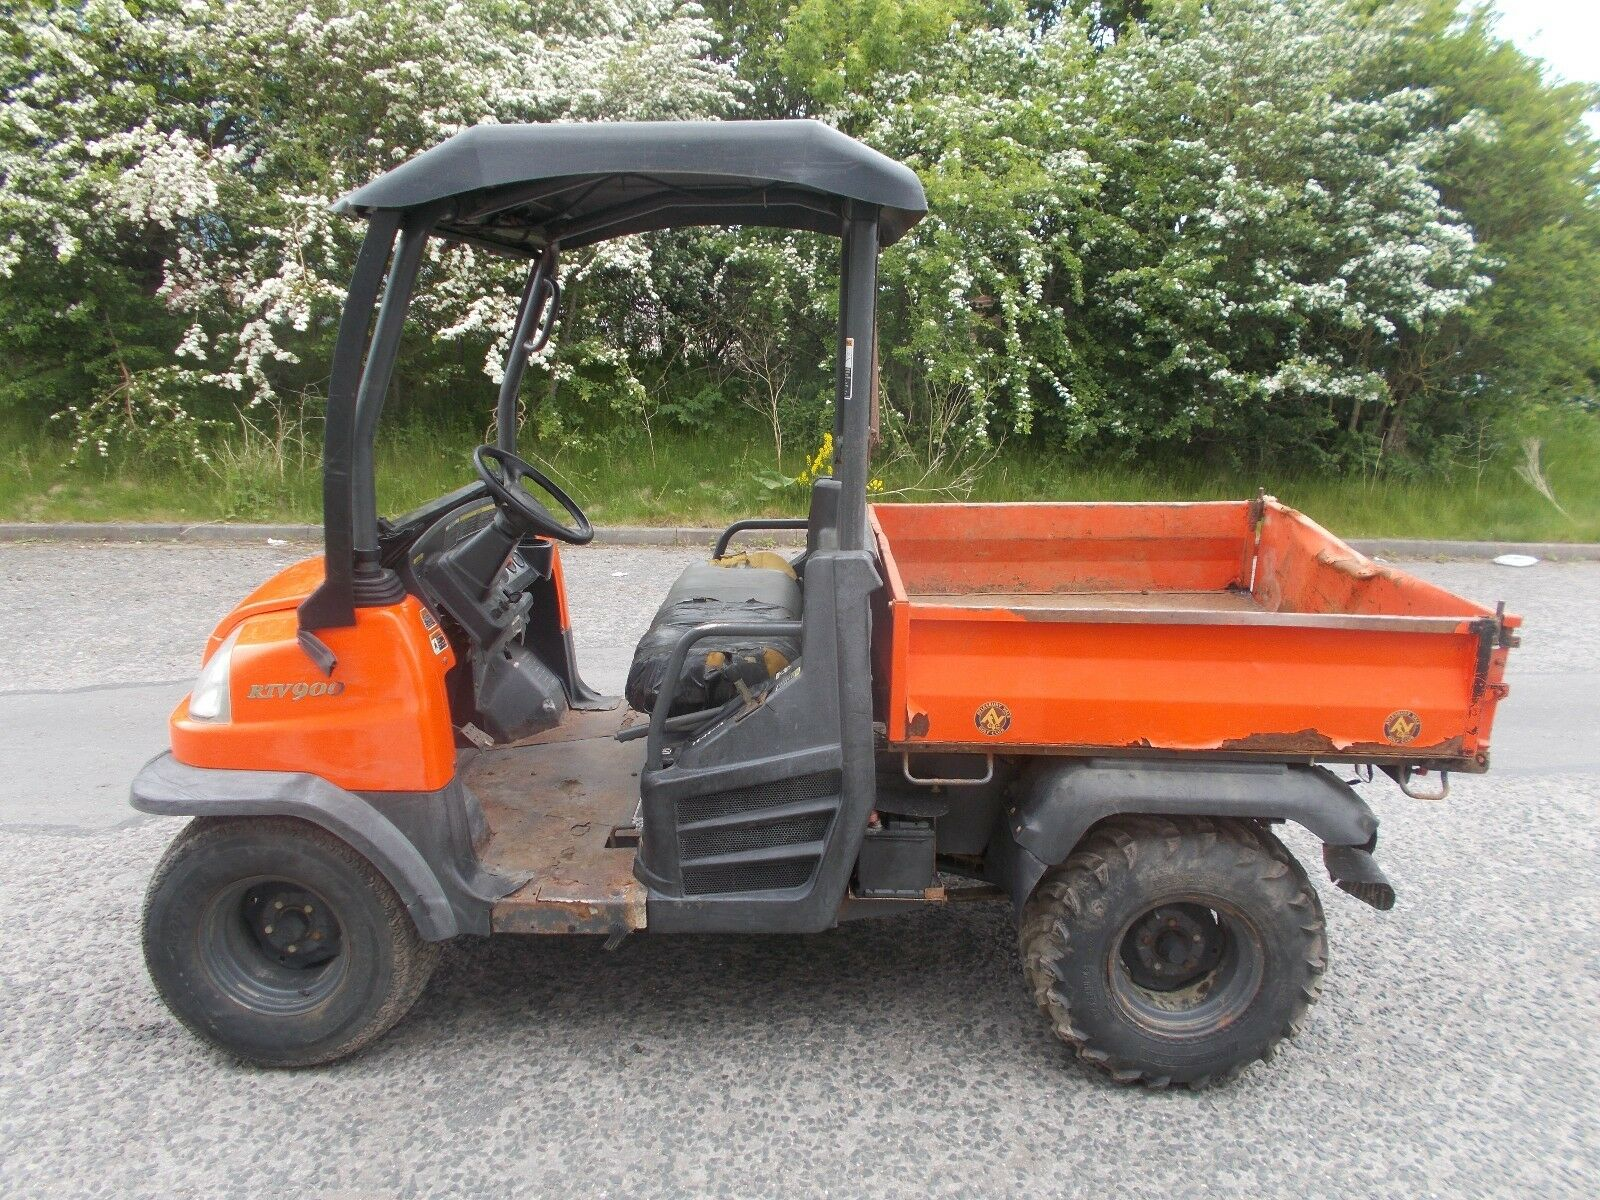 2005 Kubota RTV900 UTV utility vehicle dumper diesel Kawasaki mule deliver  Quad 1 of 11 See More